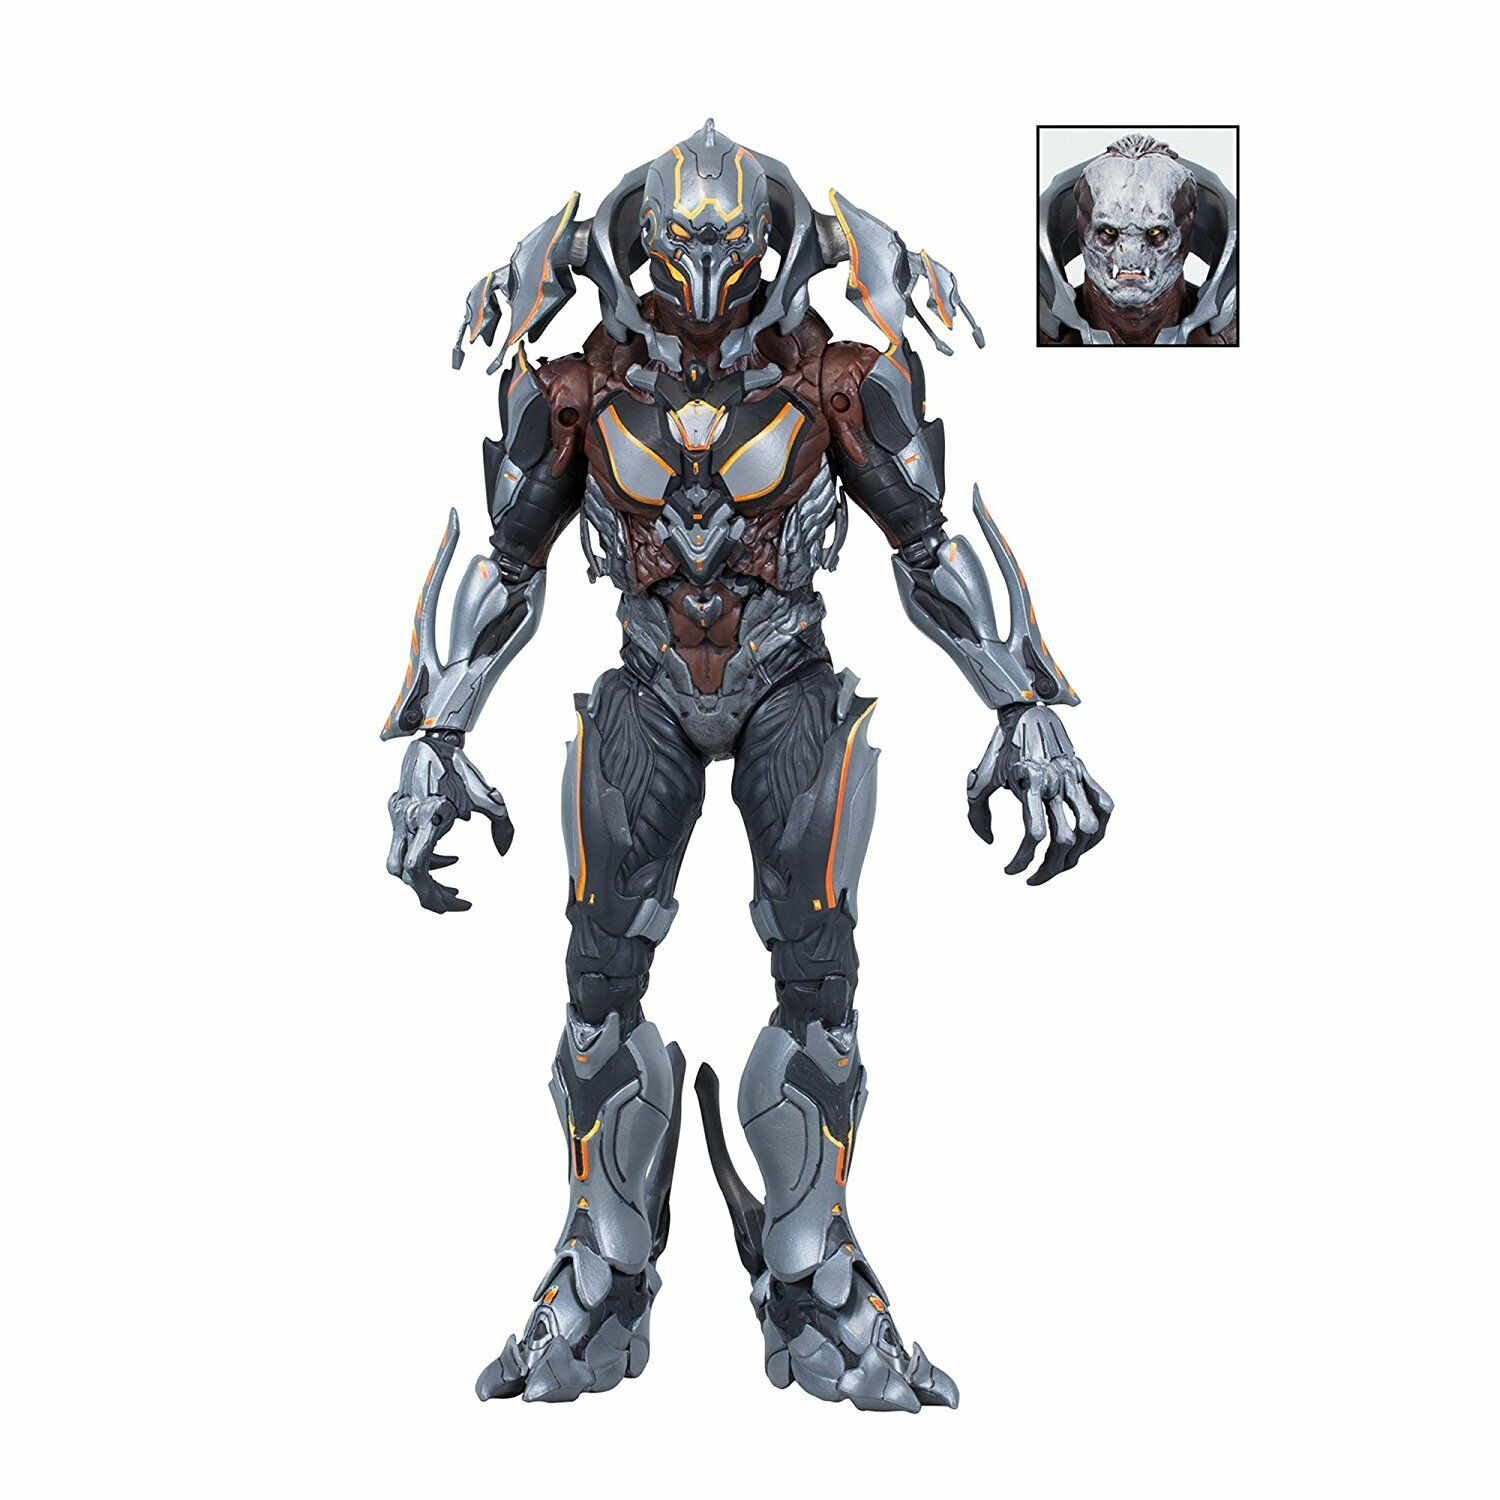 McFarlane Toys Halo Halo Halo 4 Series 2 Didact Deluxe Action Figure New In Box NIB 12fe1d